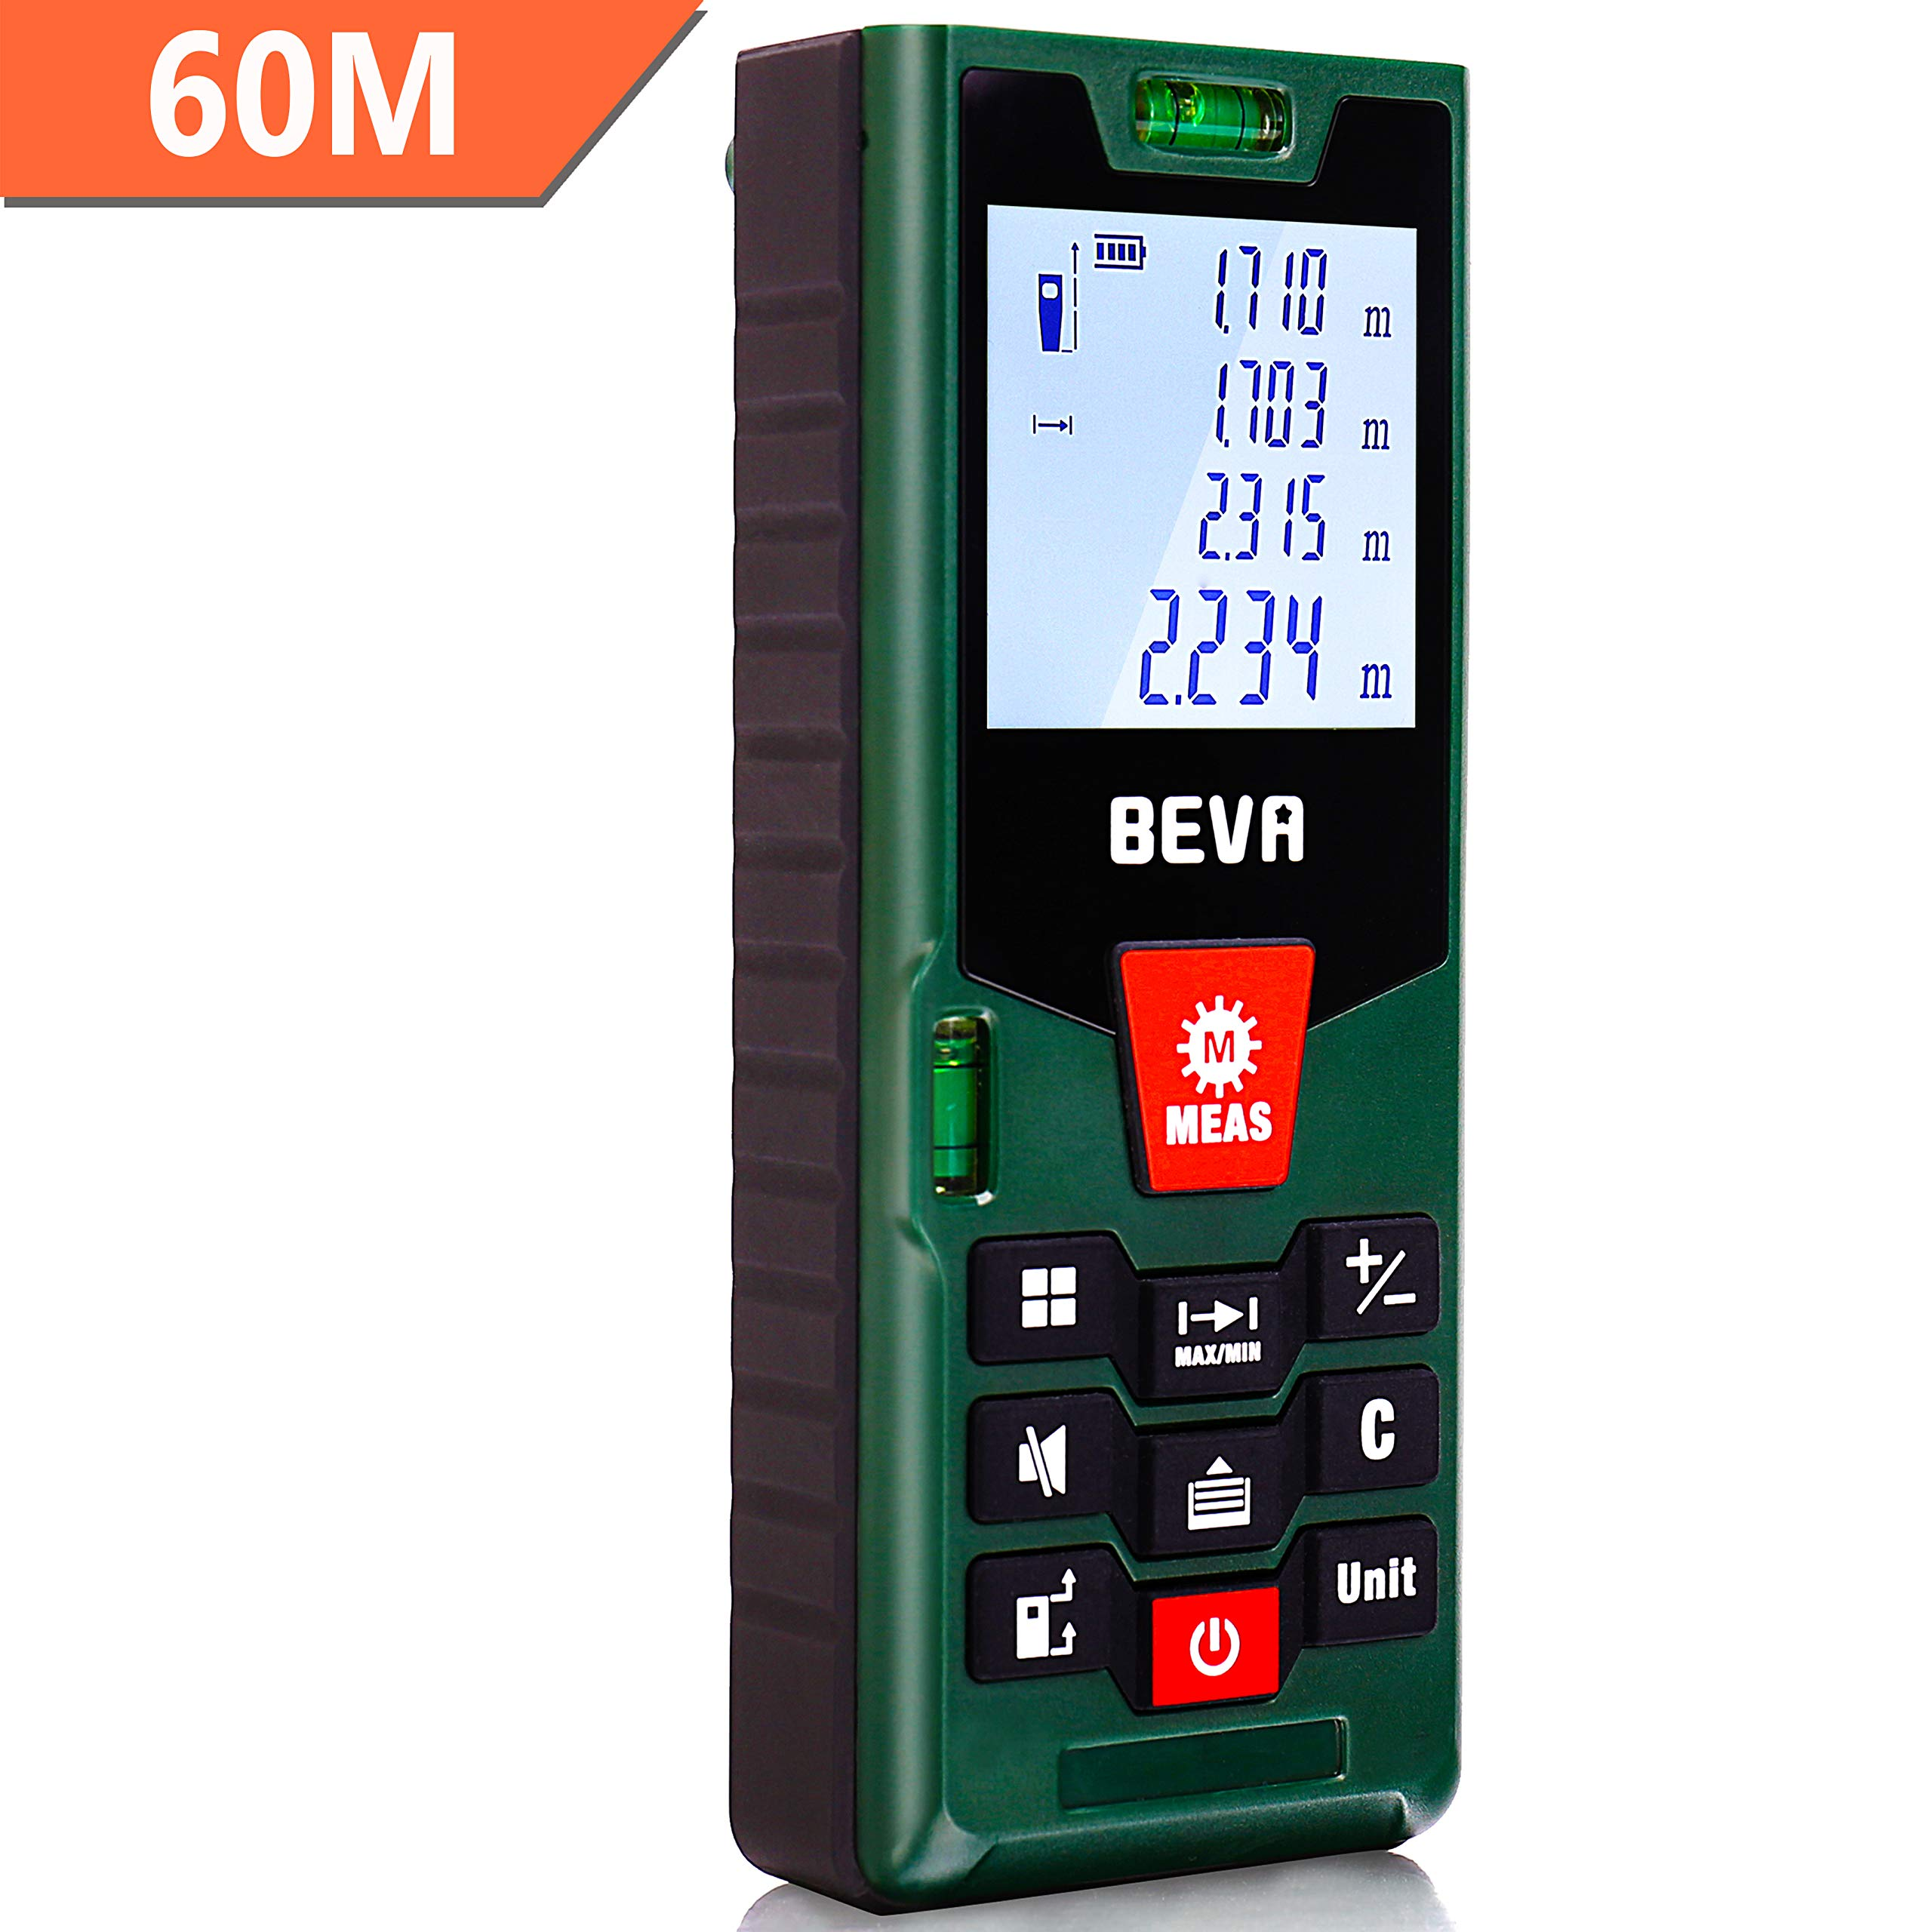 Laser Distance Measure 60m Digital Meter, BEVA Handhled Laser Tape Measure Tool with 2 Bubble Level, Backlight LCD Display, m/in/ft units, Data Recording(Battery Included) … (60M)